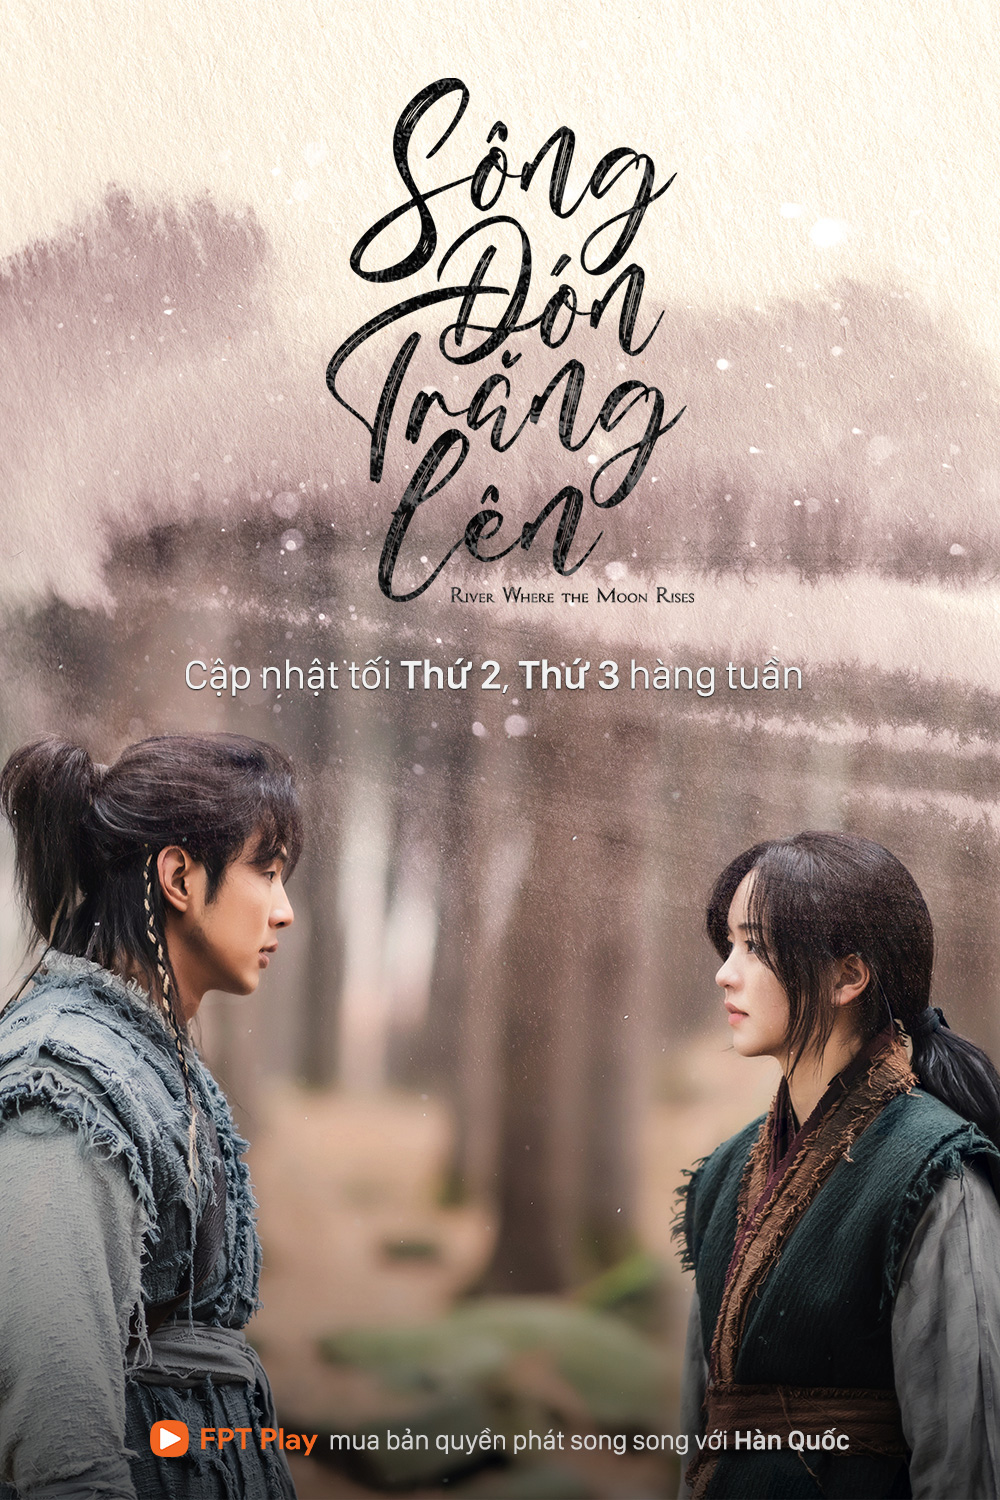 Fans are anxious because Kim So Hyun and Jisoo interact so cute in the movie Song Welcome Moon - Photo 3.